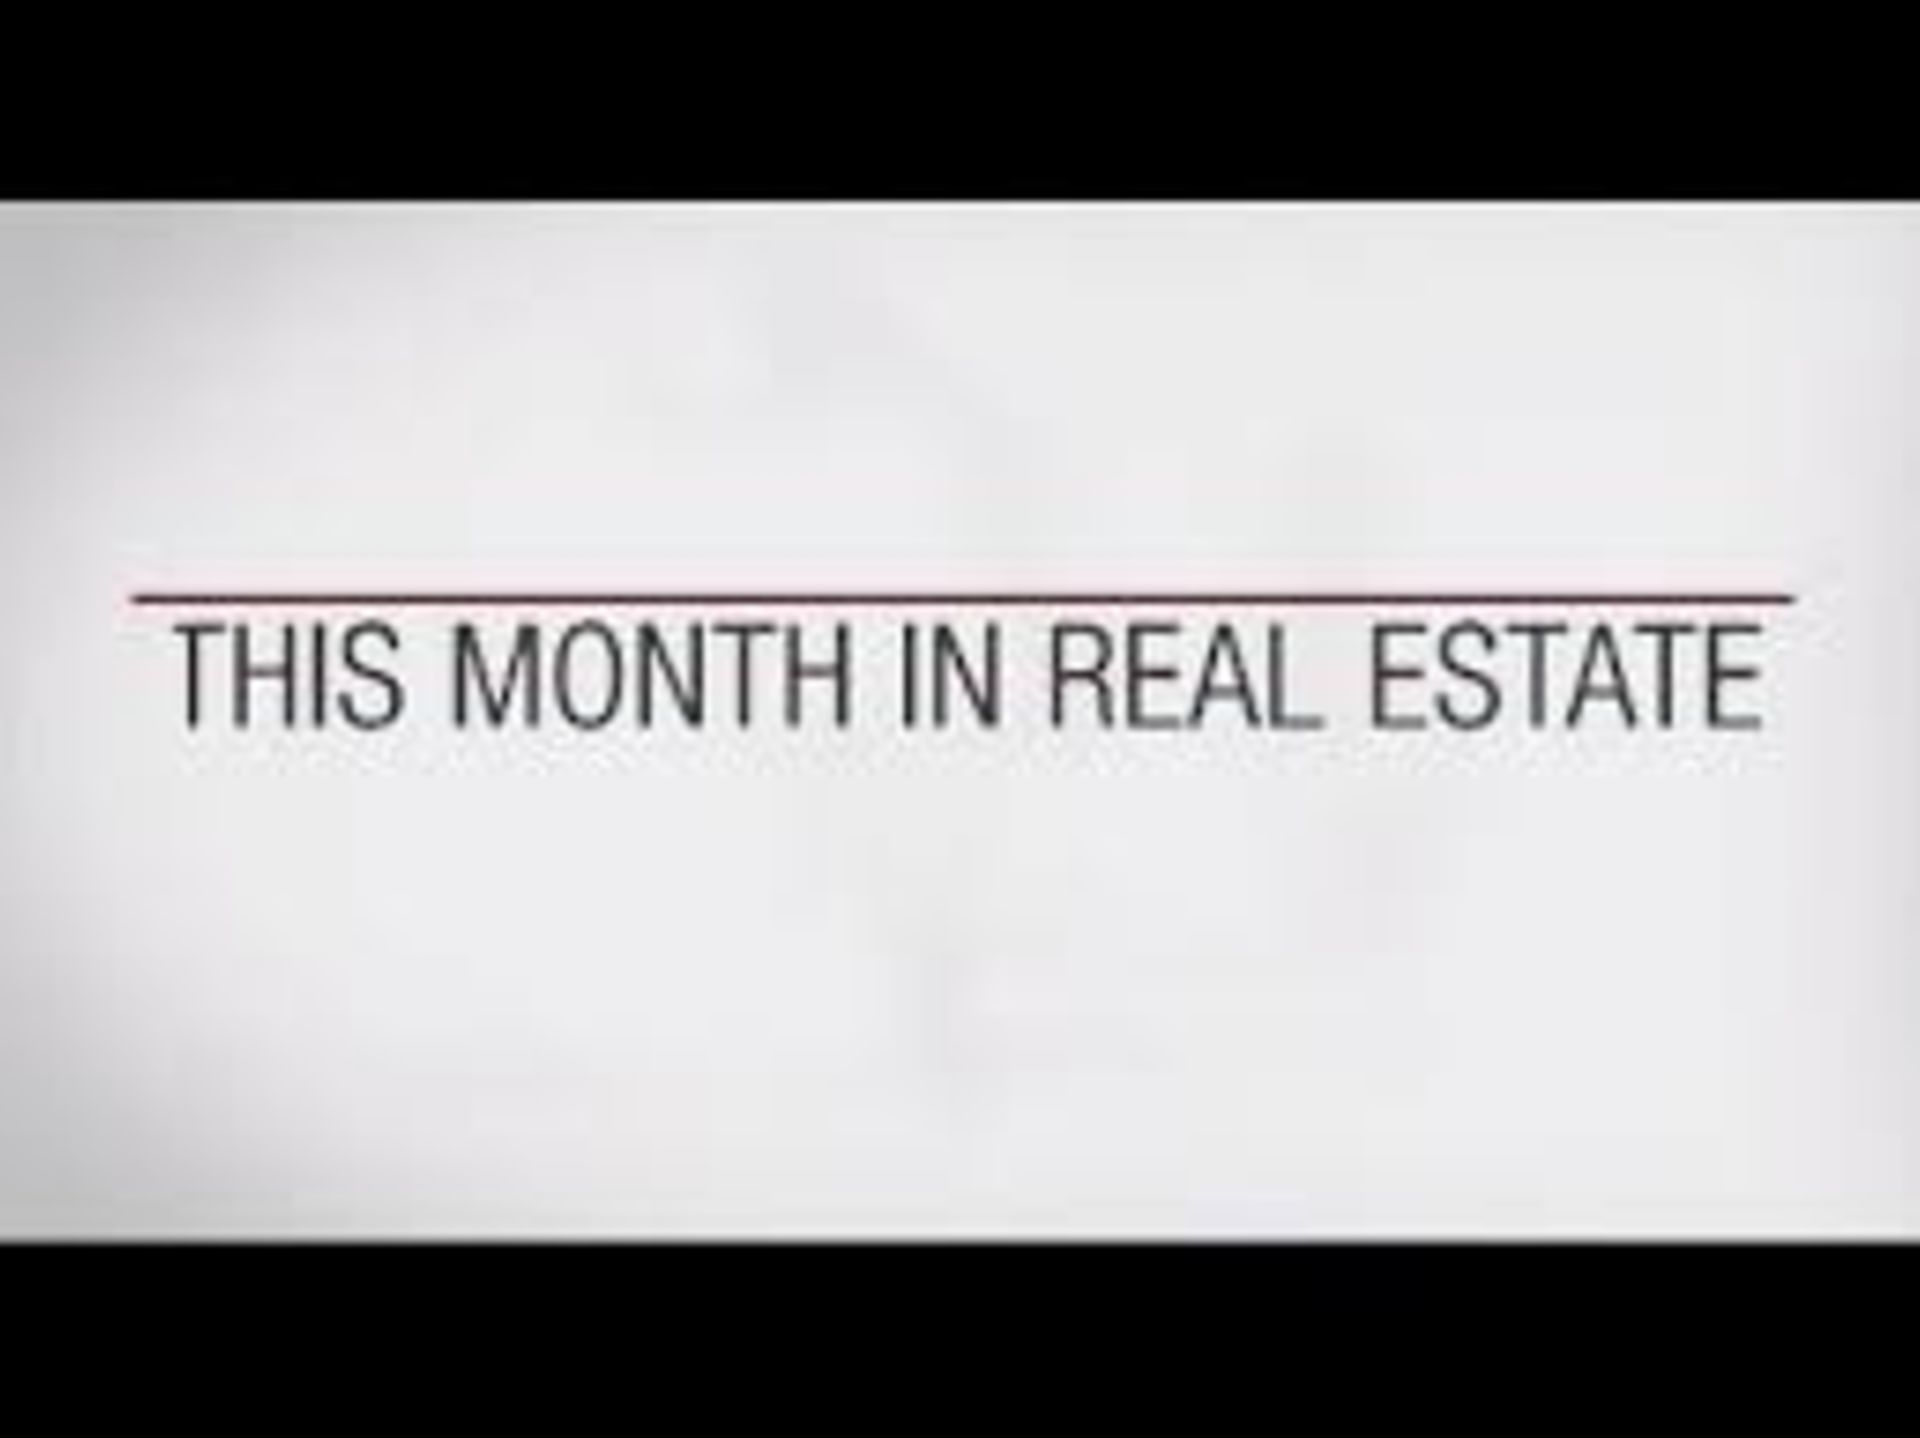 Welcome to This Month in Real Estate